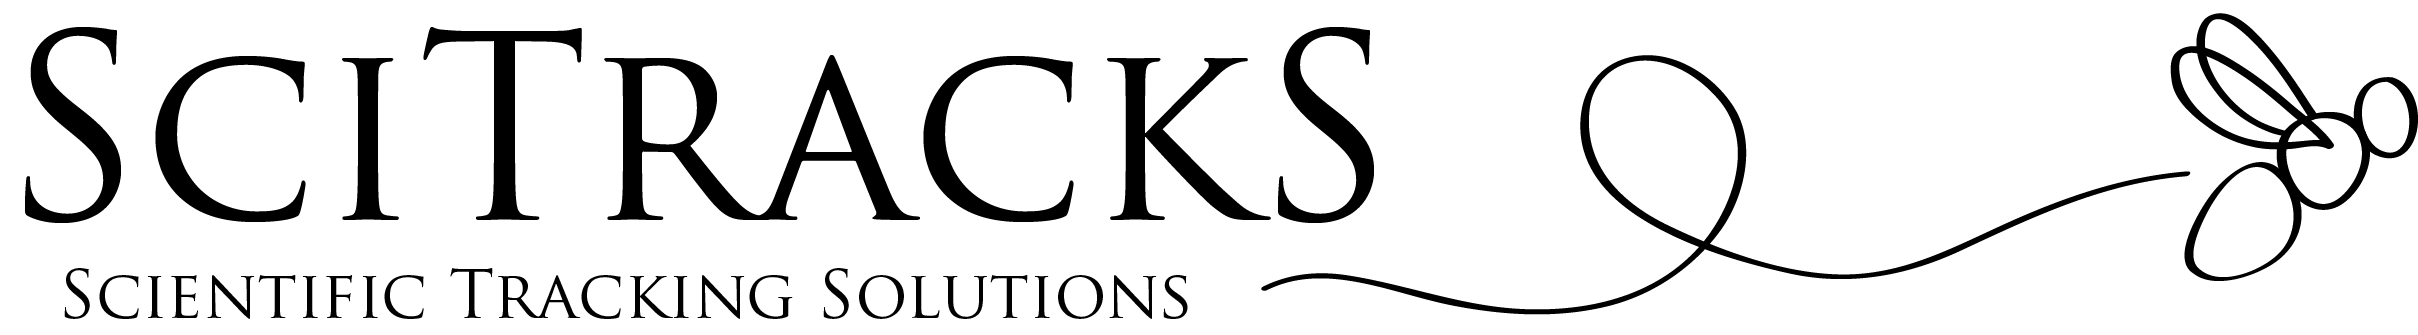 Scitracks Logo